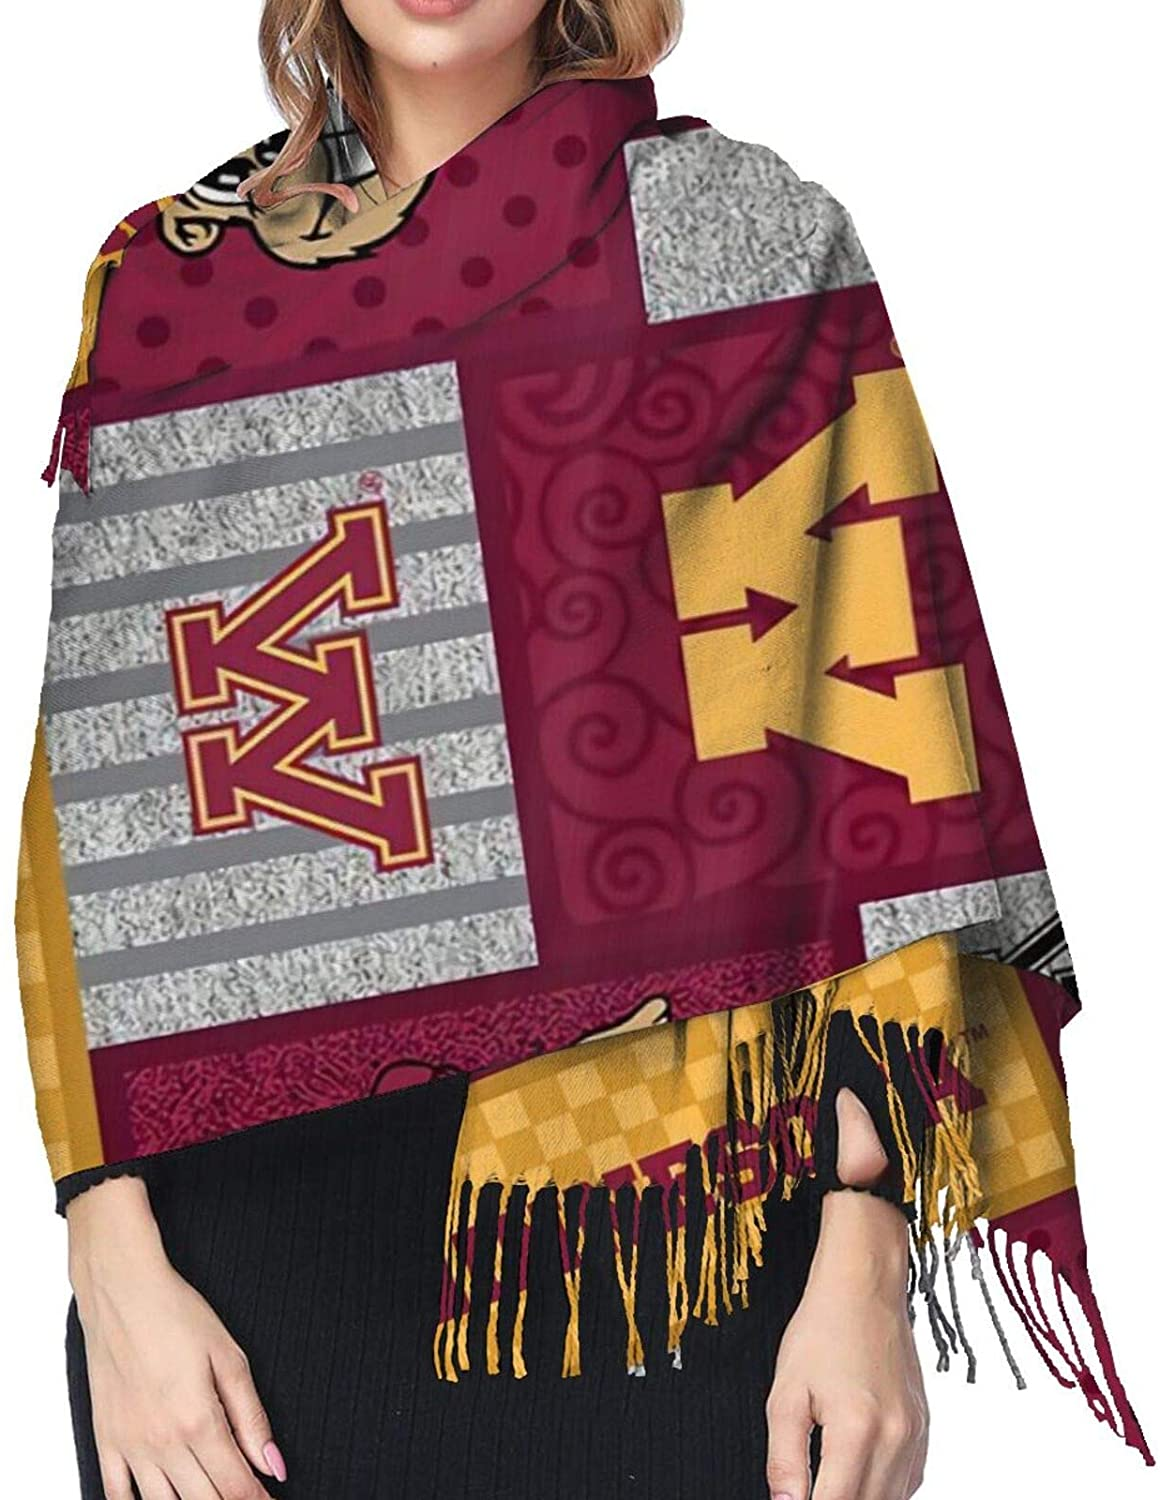 University Of Minnesota Printed Cashmere Scarf,Large Soft Warm Shawl Wrap Scarf Tassels Scarves,77